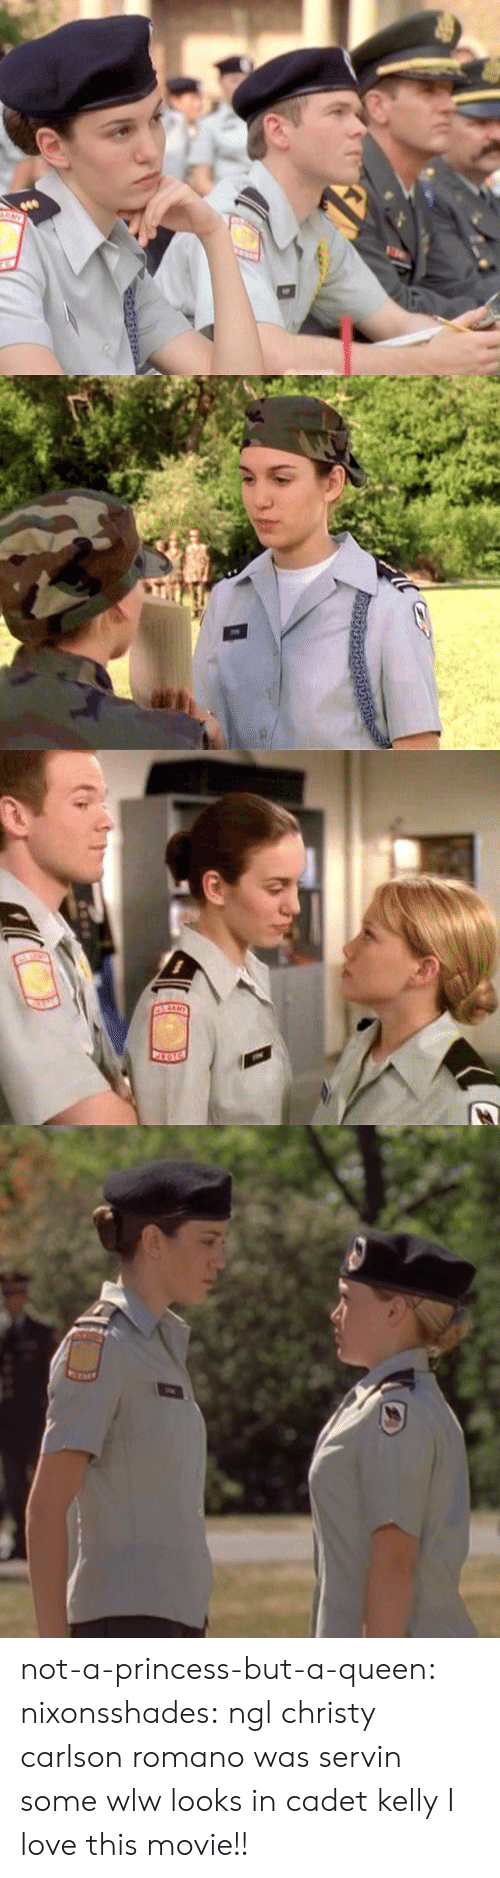 Love, Target, and Tumblr: not-a-princess-but-a-queen:  nixonsshades:  ngl christy carlson romano was servin some wlw looks in cadet kelly  I love this movie!!